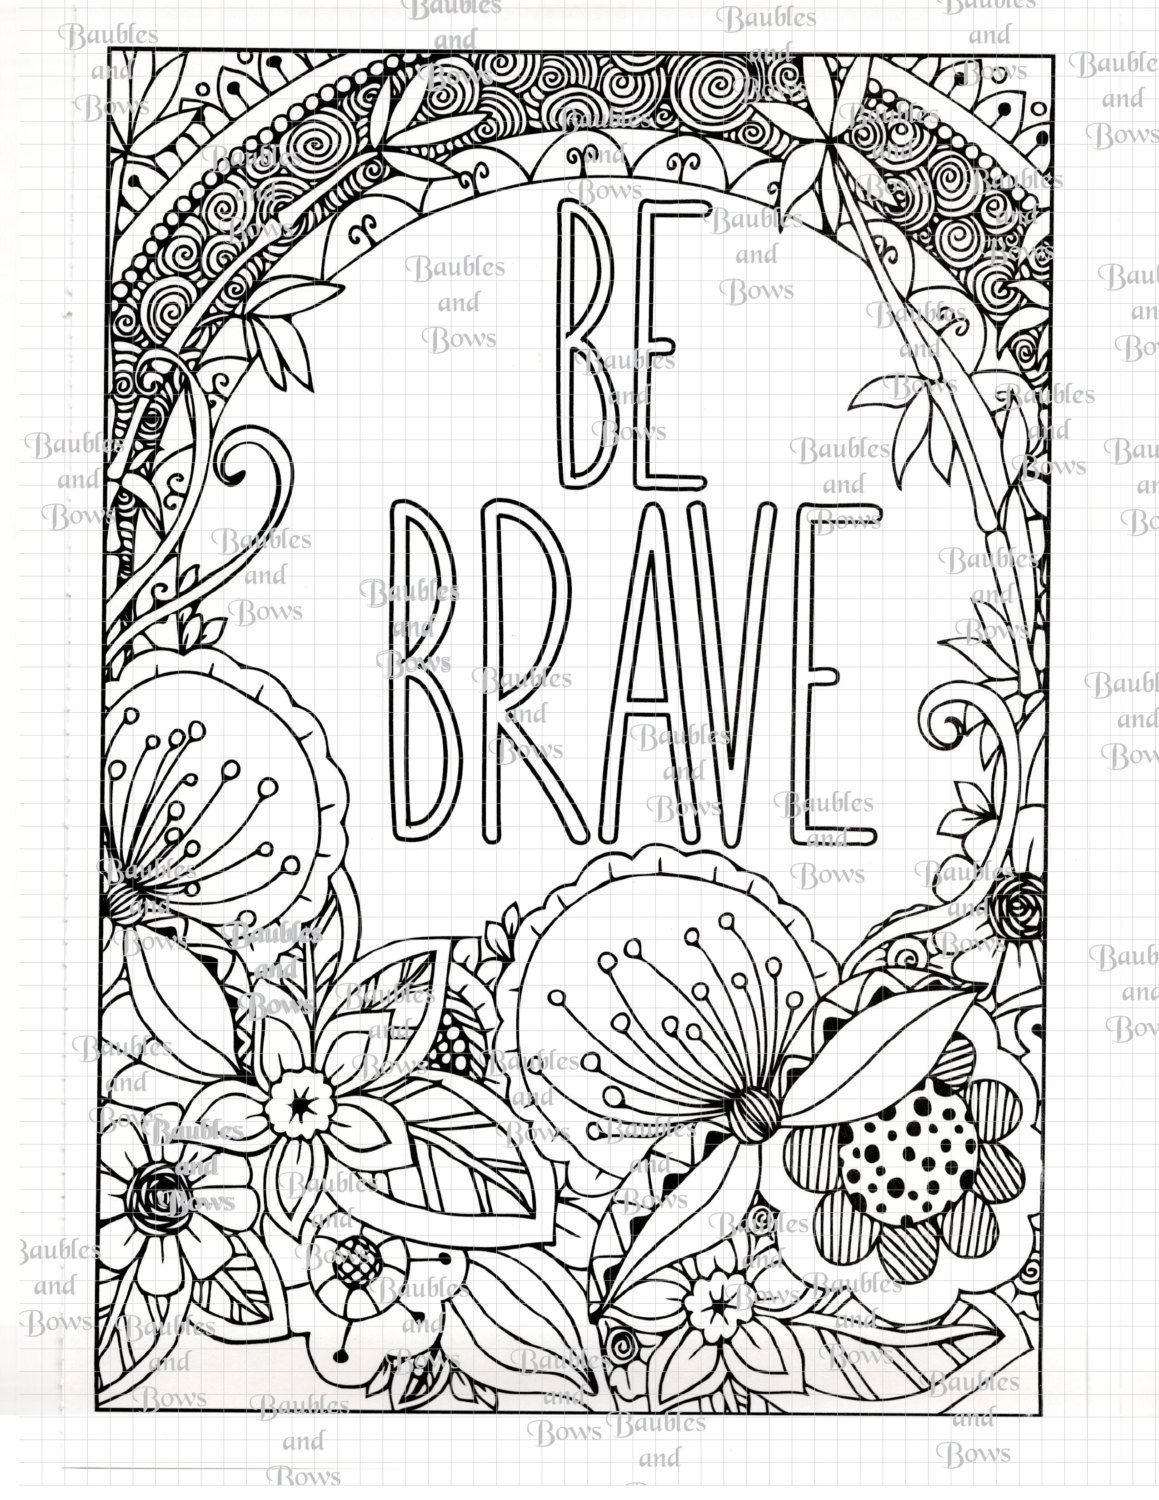 Coloring pages for down syndrome adults - Brave Printable Adult Mandala Coloring Page Digital By Sewlacee